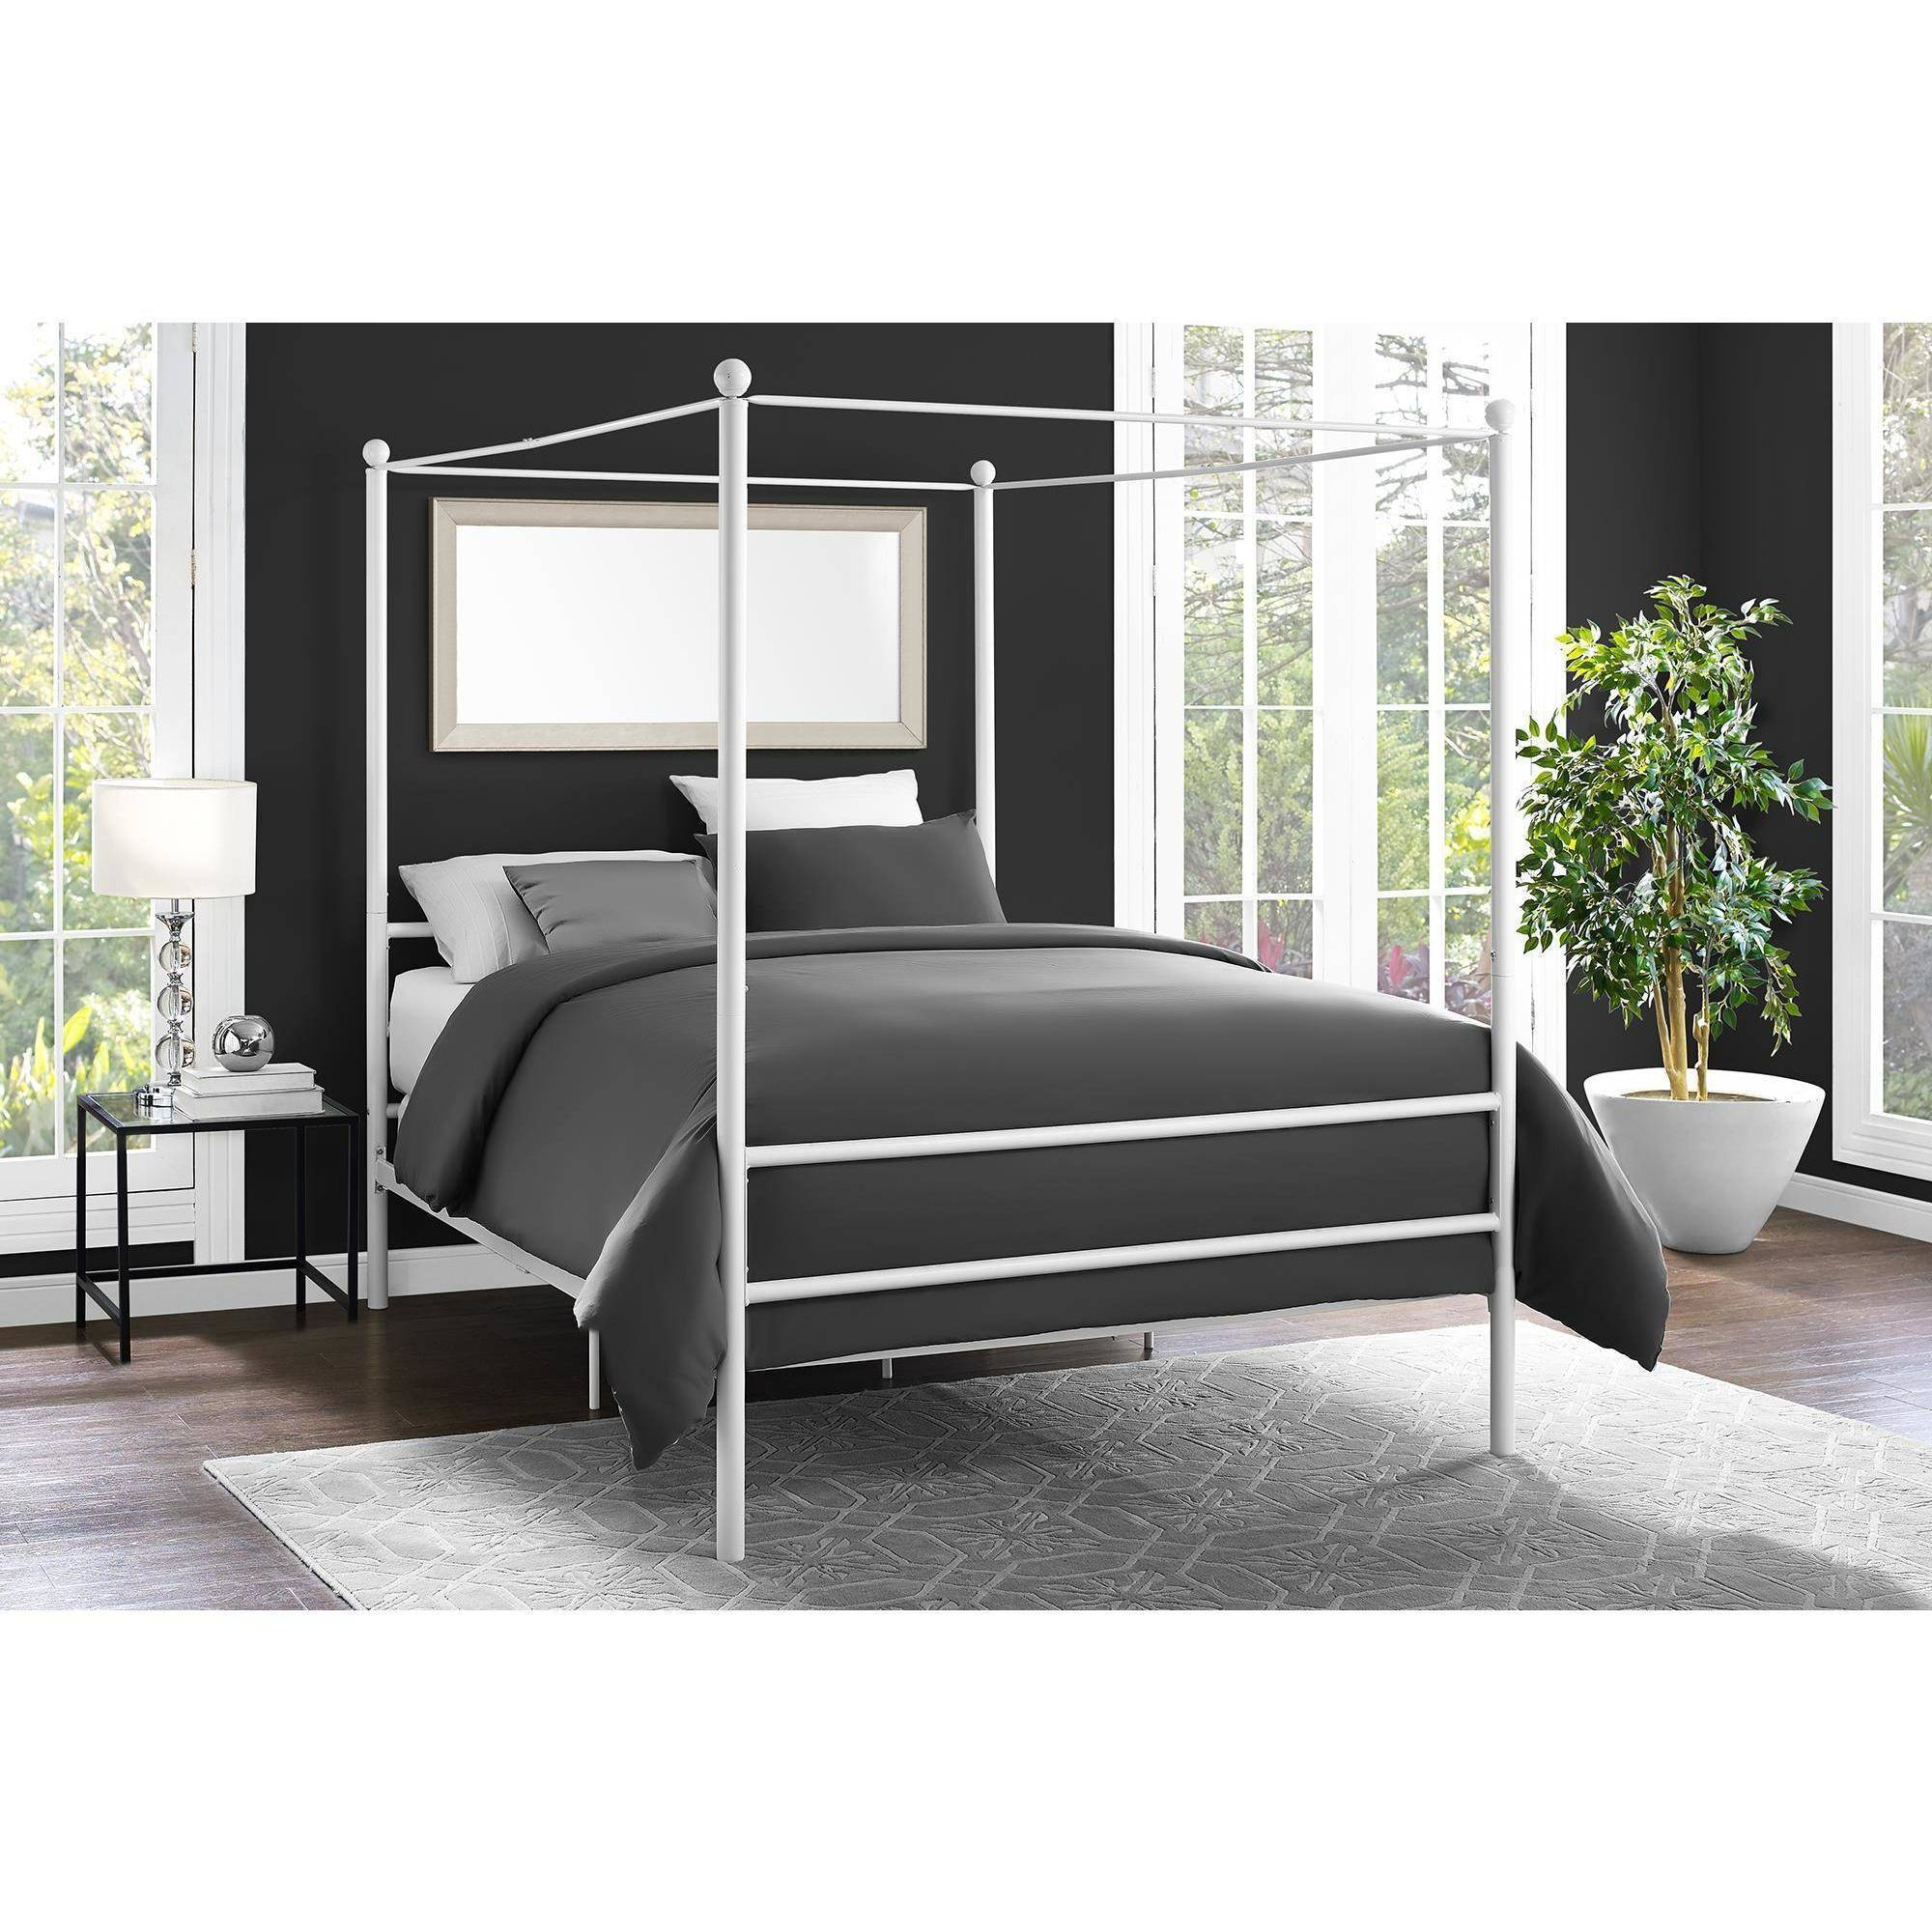 Mainstays Metal Canopy Bed Multiple Colors Multiple Sizes  sc 1 st  Walmart & King Canopy Beds